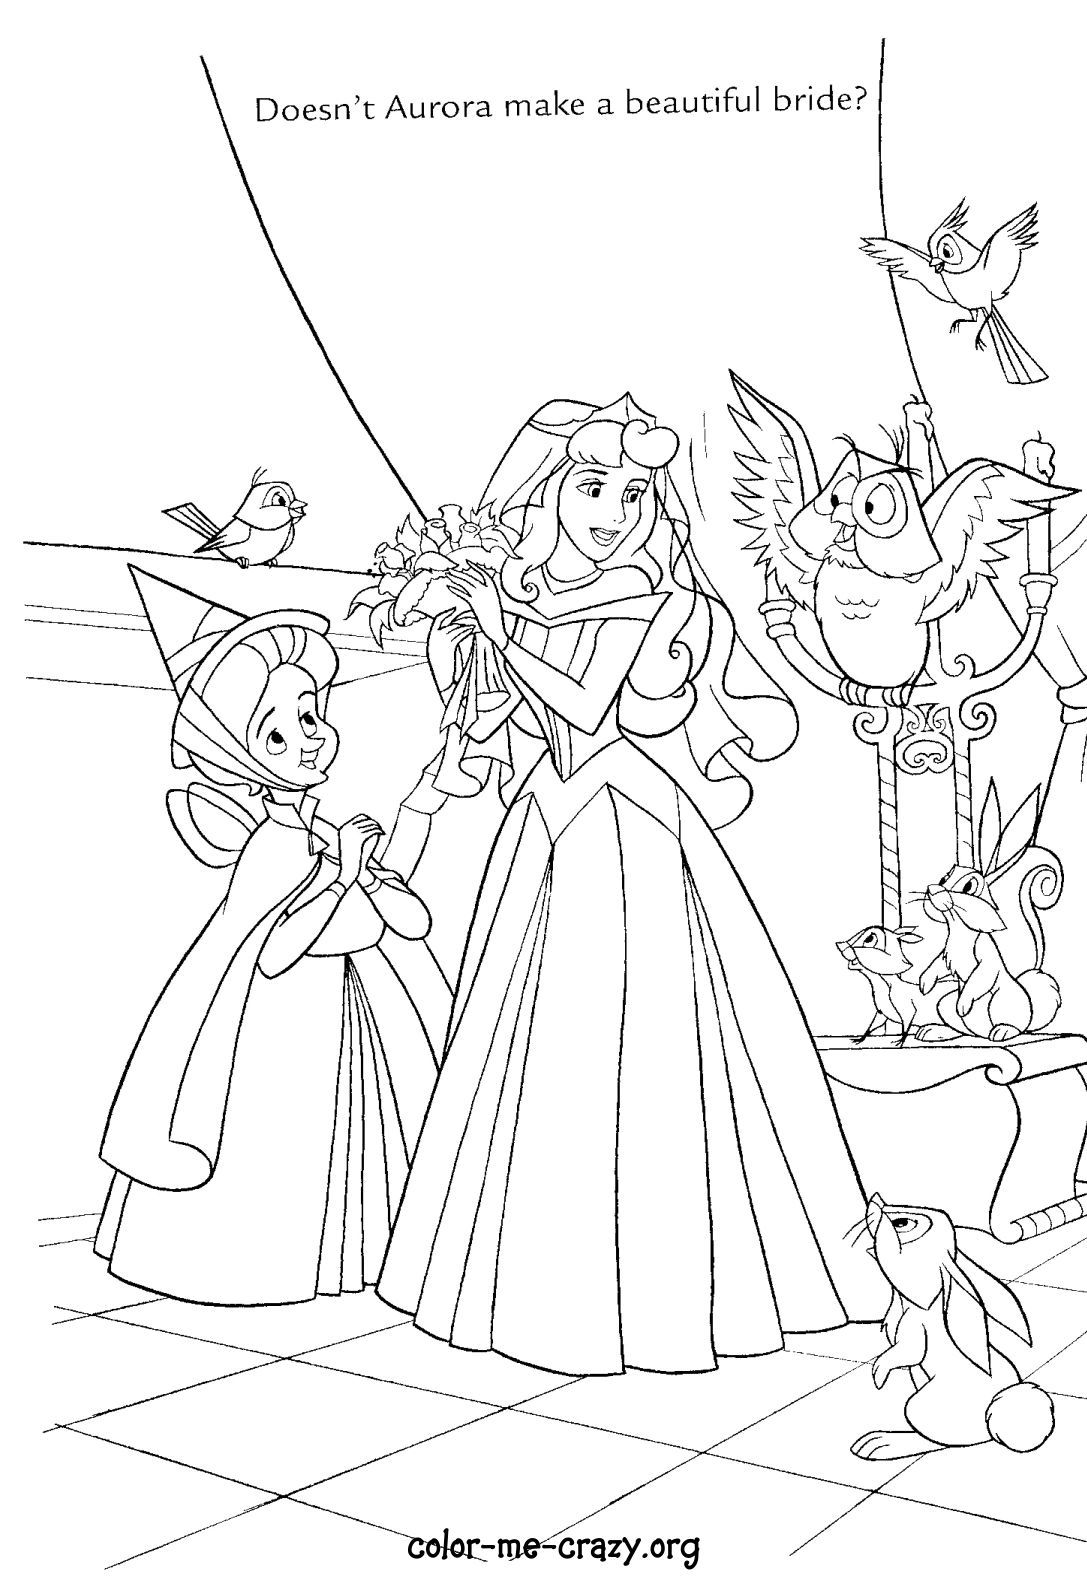 A Whole Bunch Of Disney Princess Wedding Themed Colouring Pages To